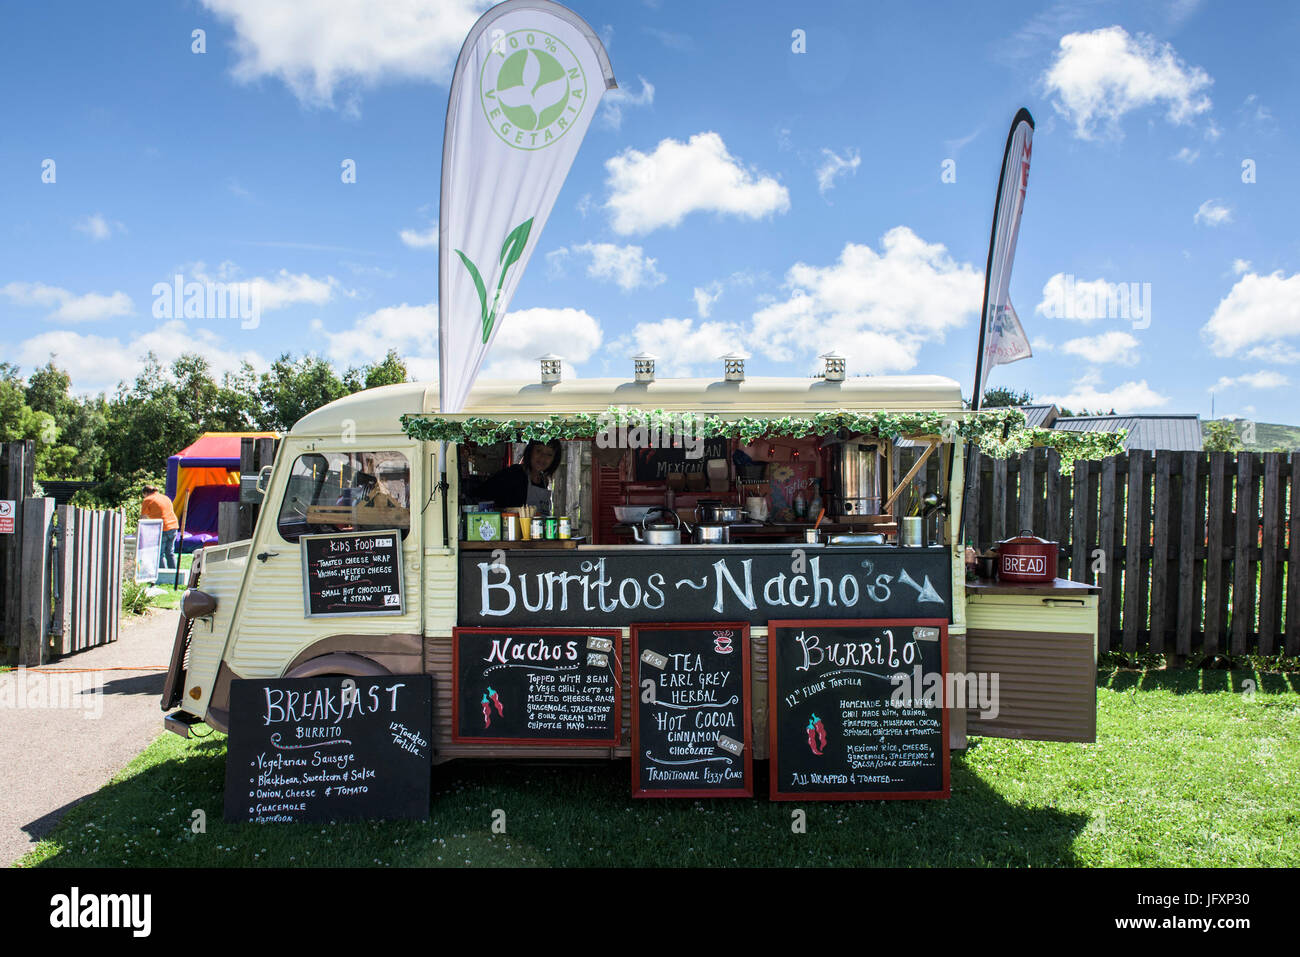 A food truck serving vegetarian Burritos and Nachos at a festival. - Stock Image